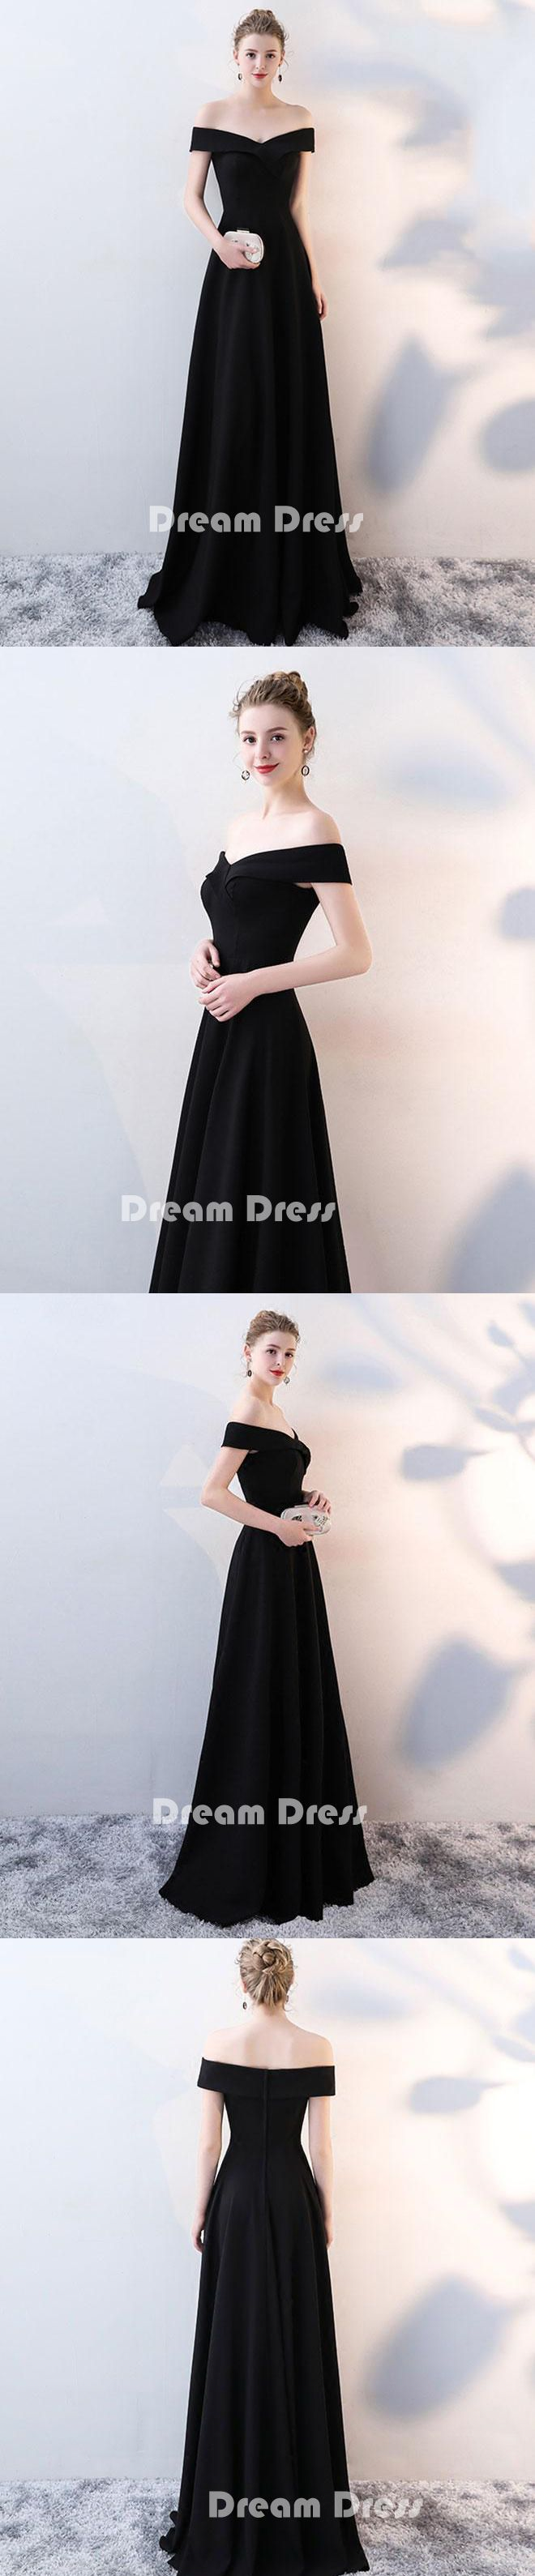 Black v neck long prom dresses, black evening dresses,PD280003 #promdresses #shopping #fashion #dresses #evening